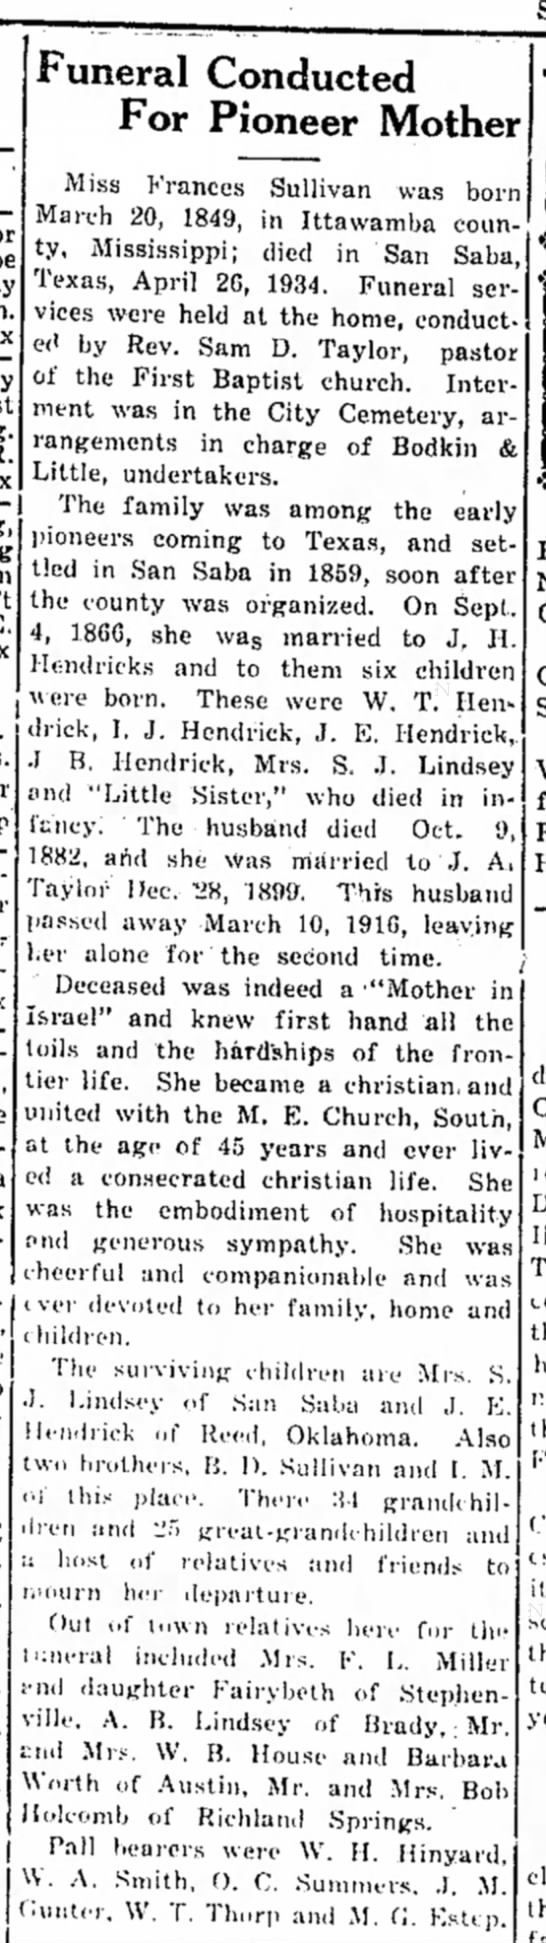 Frances Elizabeth Sullivan Hendrick  Obituary - Funeral Conducted For Pioneer Mother Miss...